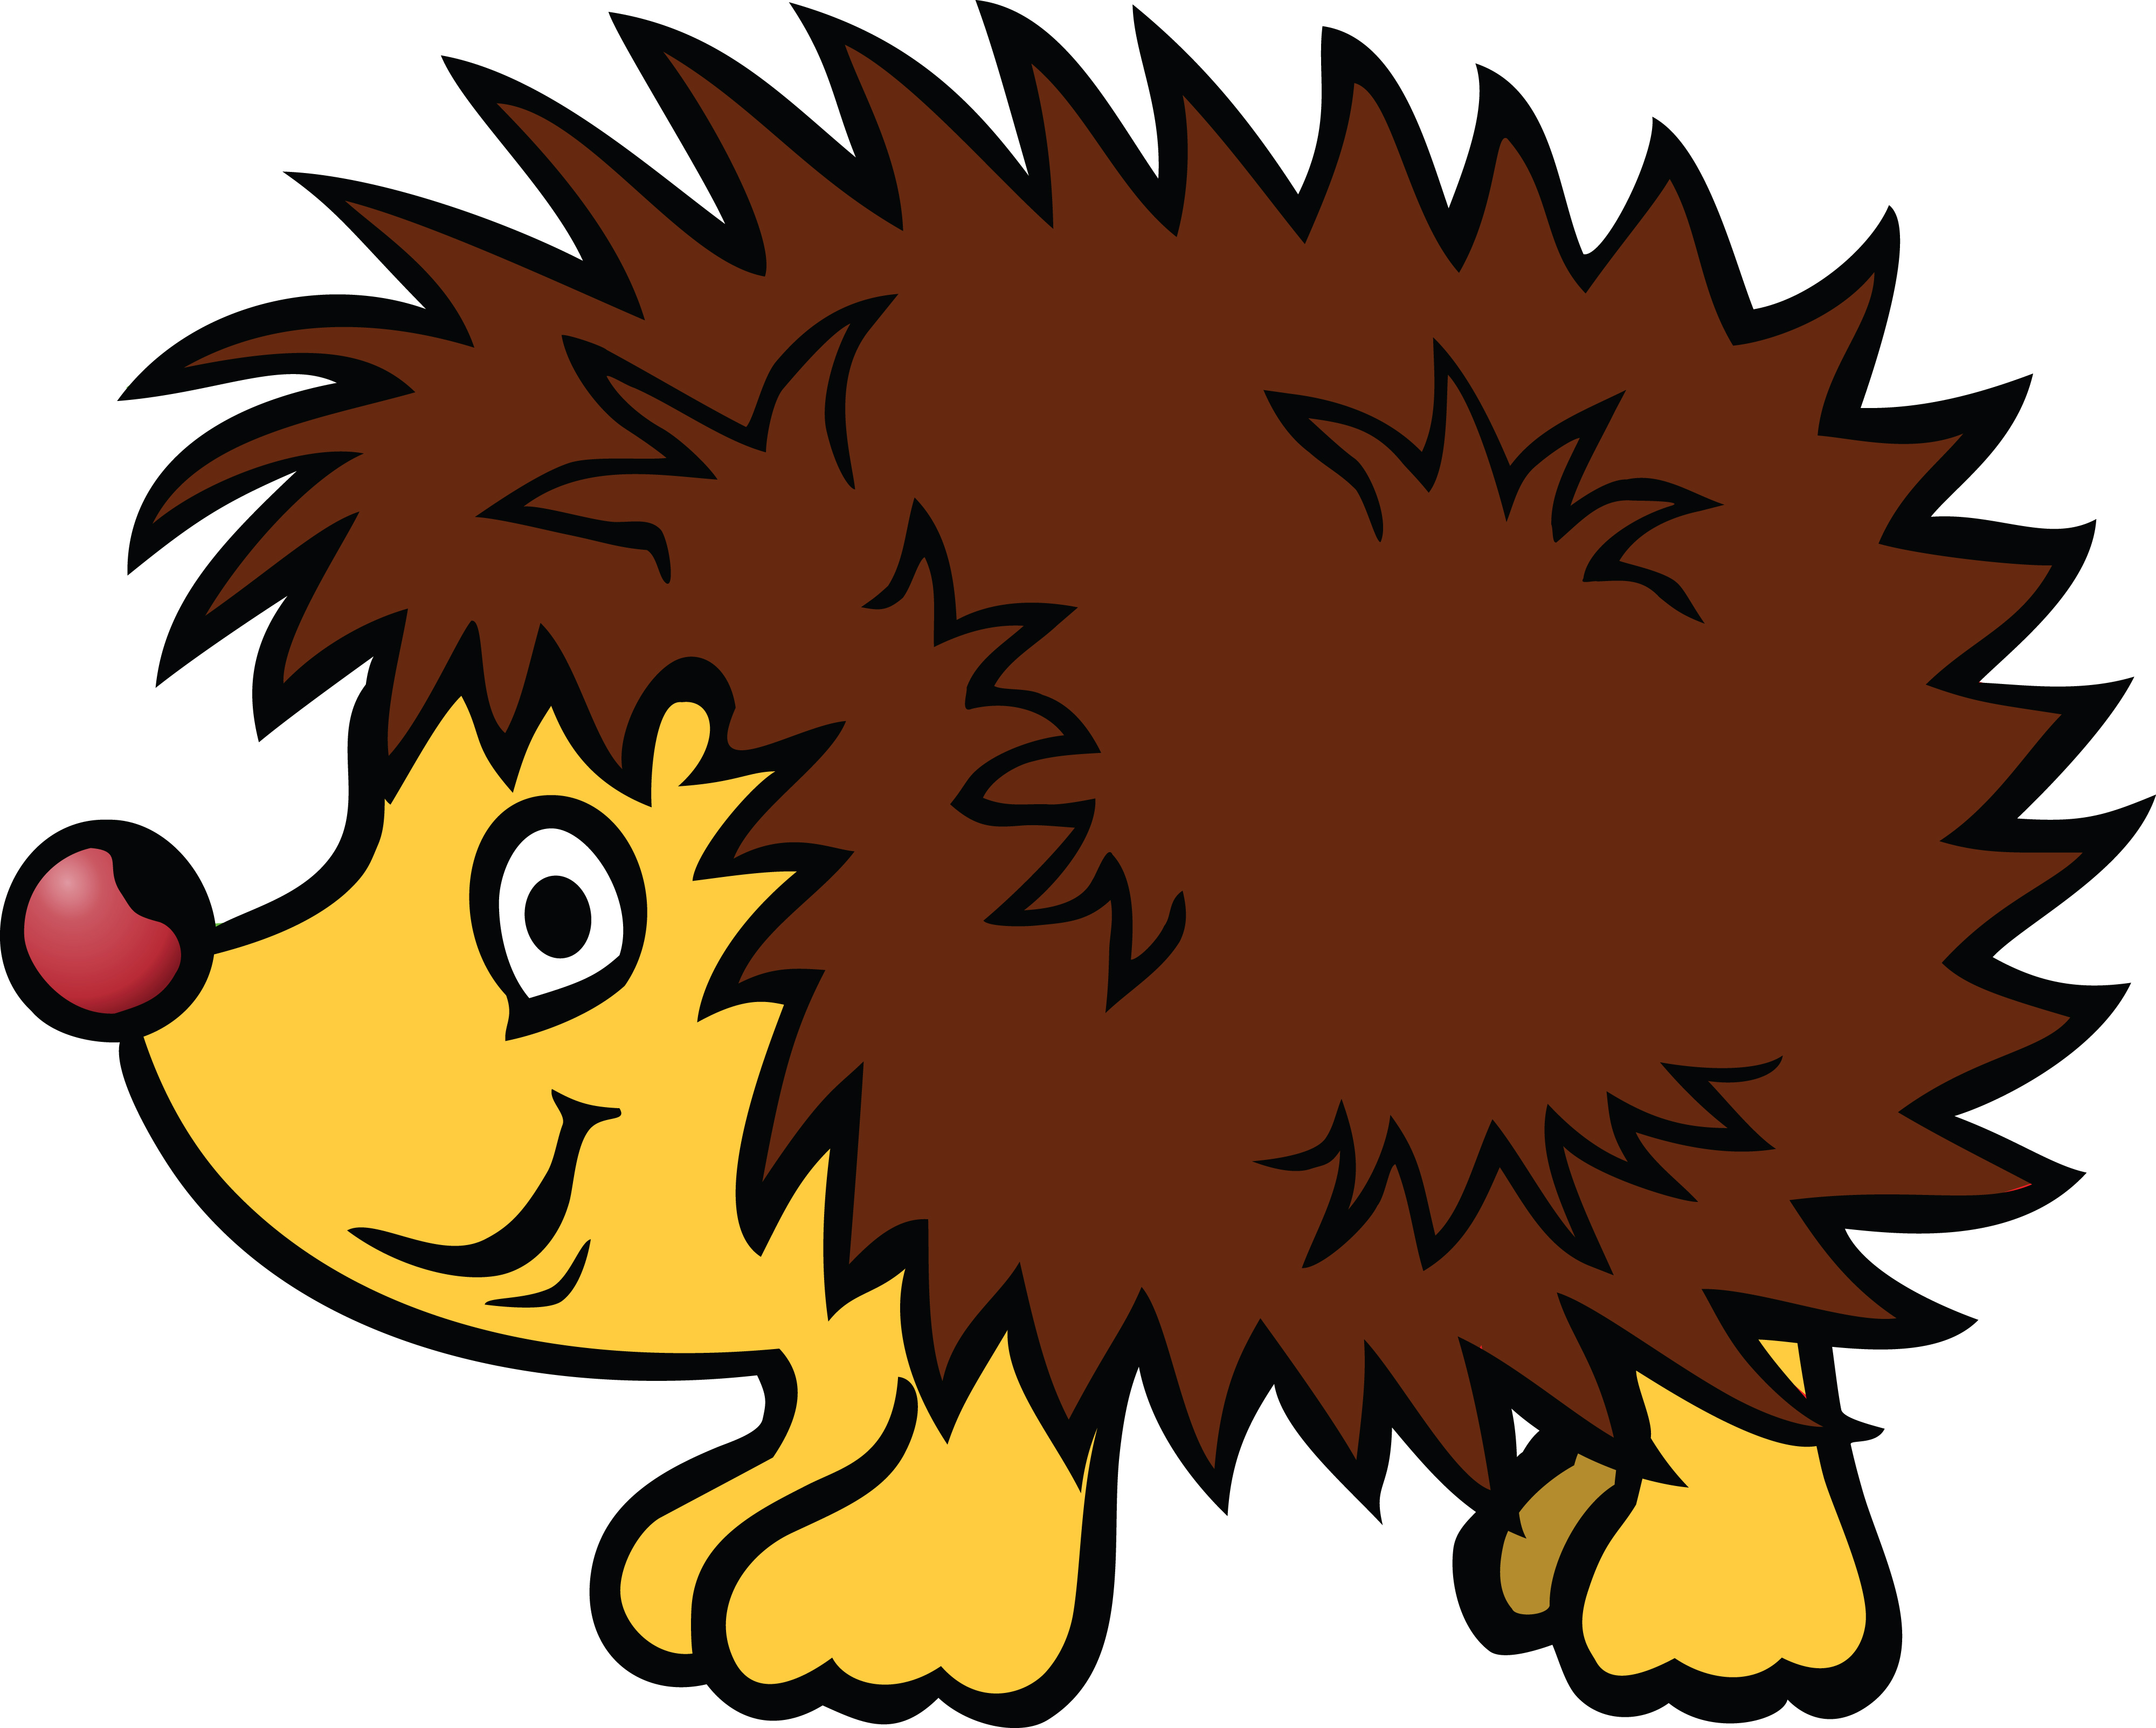 Free Clipart Of A hedgehog.